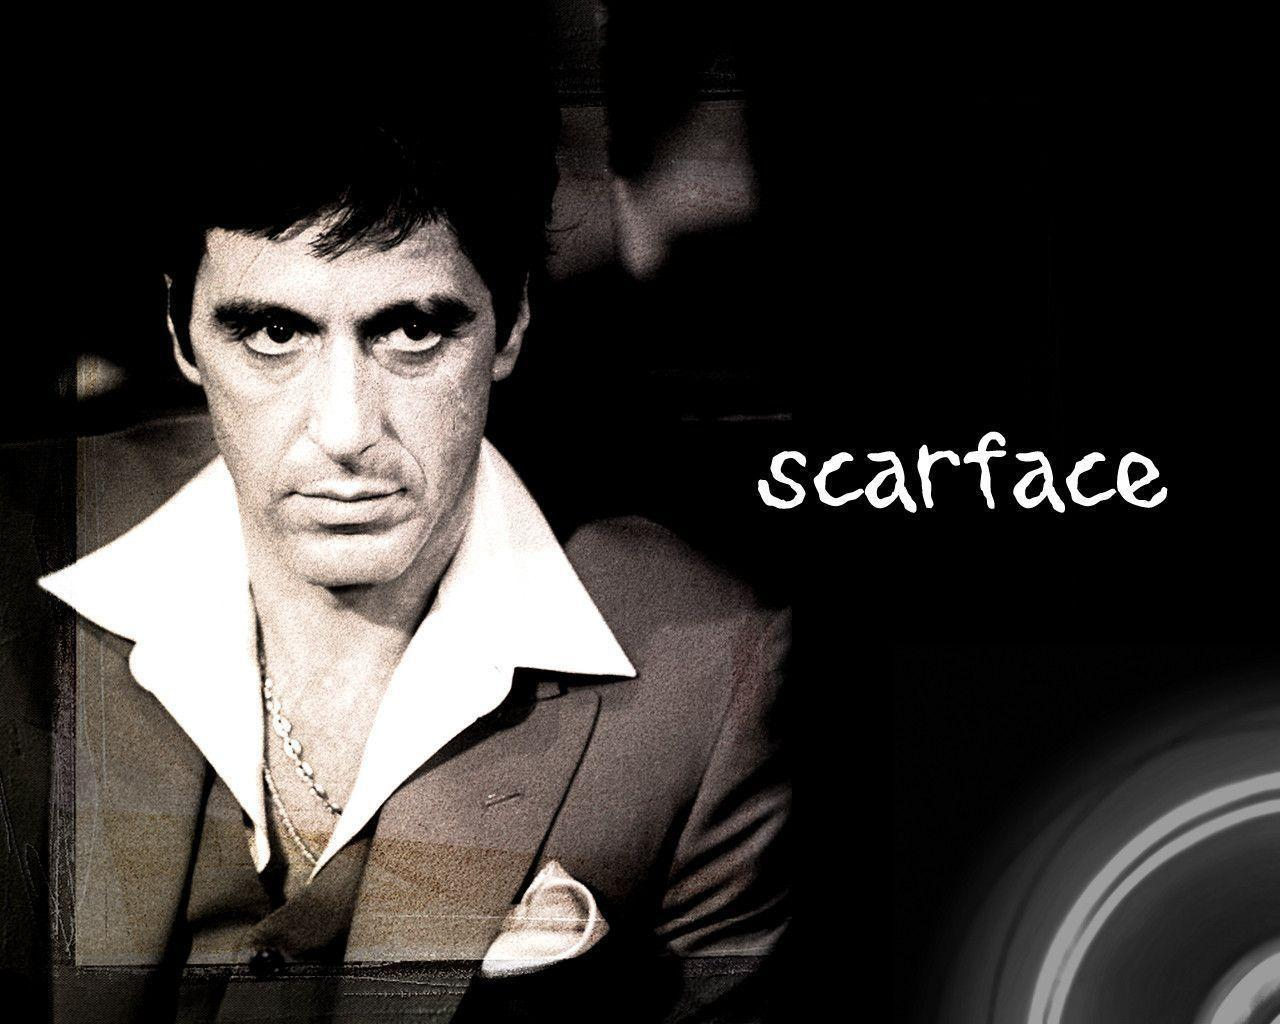 Scarface Desktop Wallpapers 1280x1024